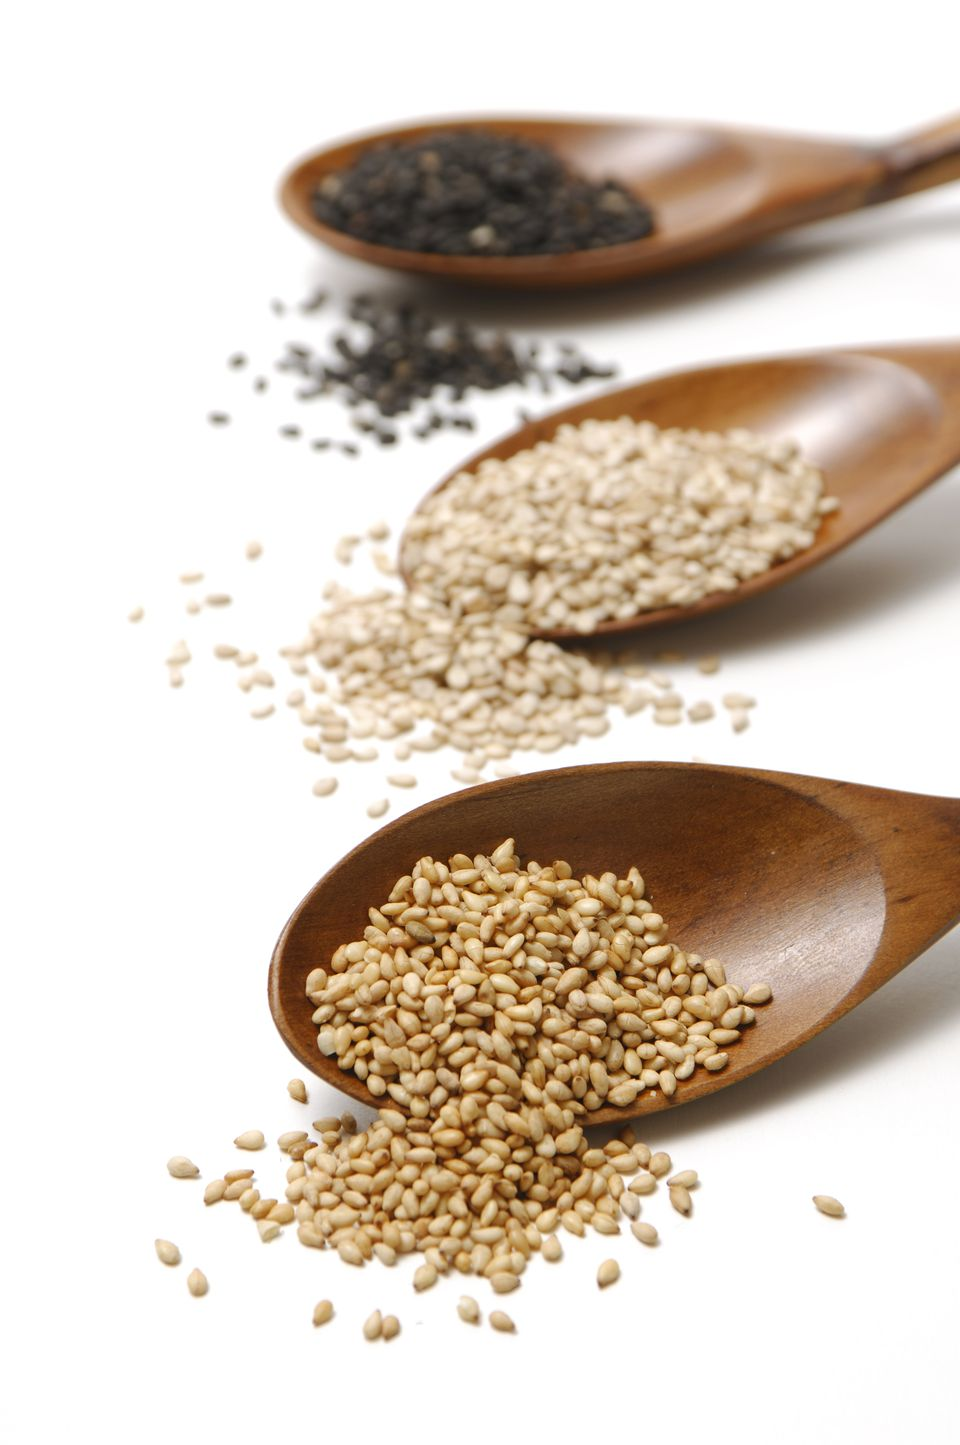 Three Sorts of Sesame Seeds